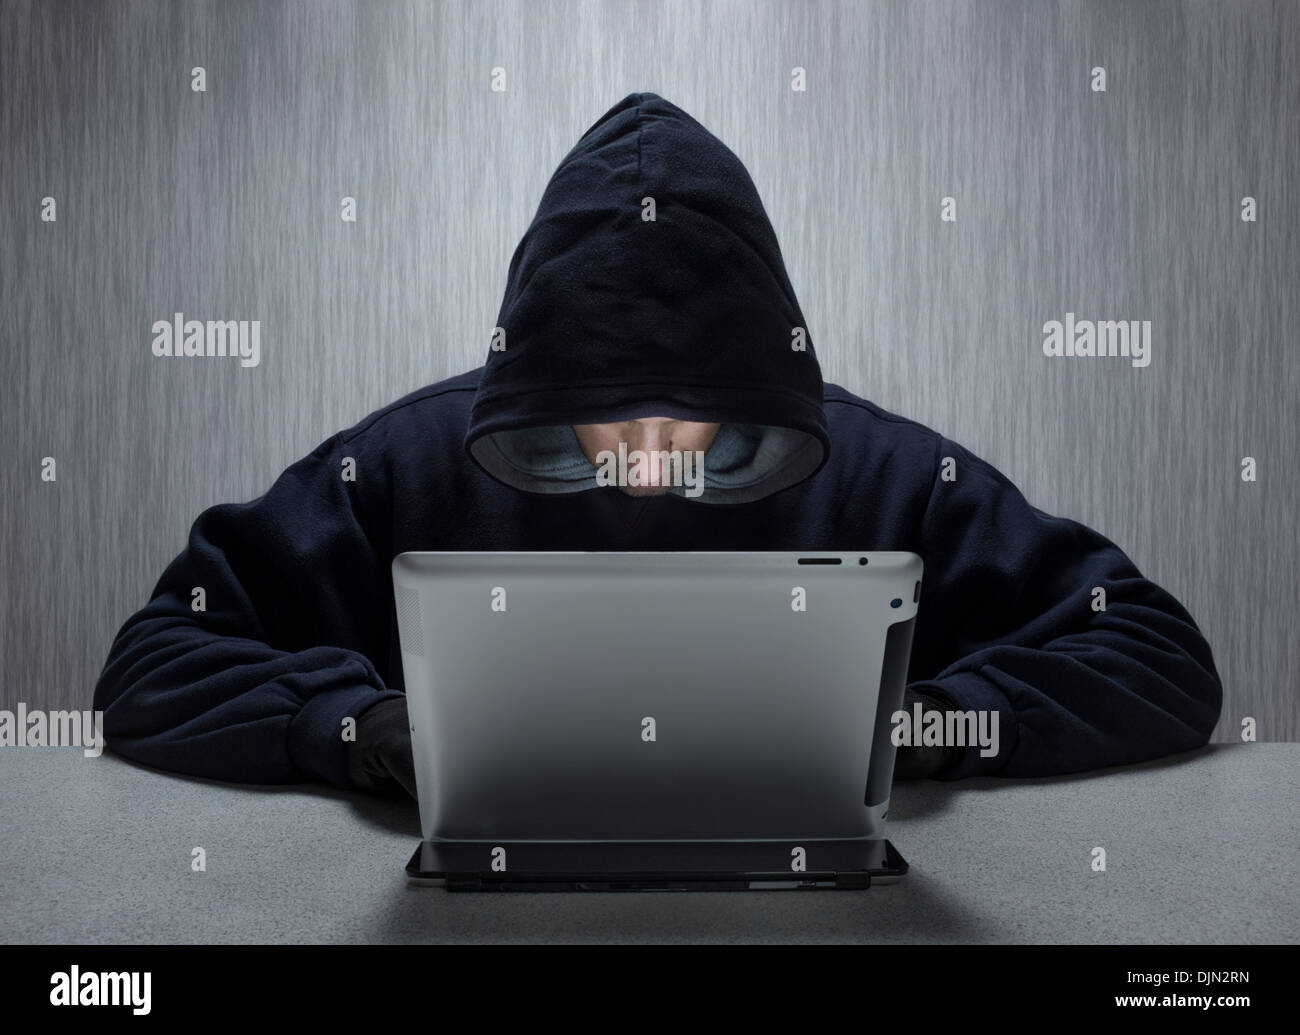 An anonymous hooded male using a tablet computer representing a cyber criminal. - Stock Image